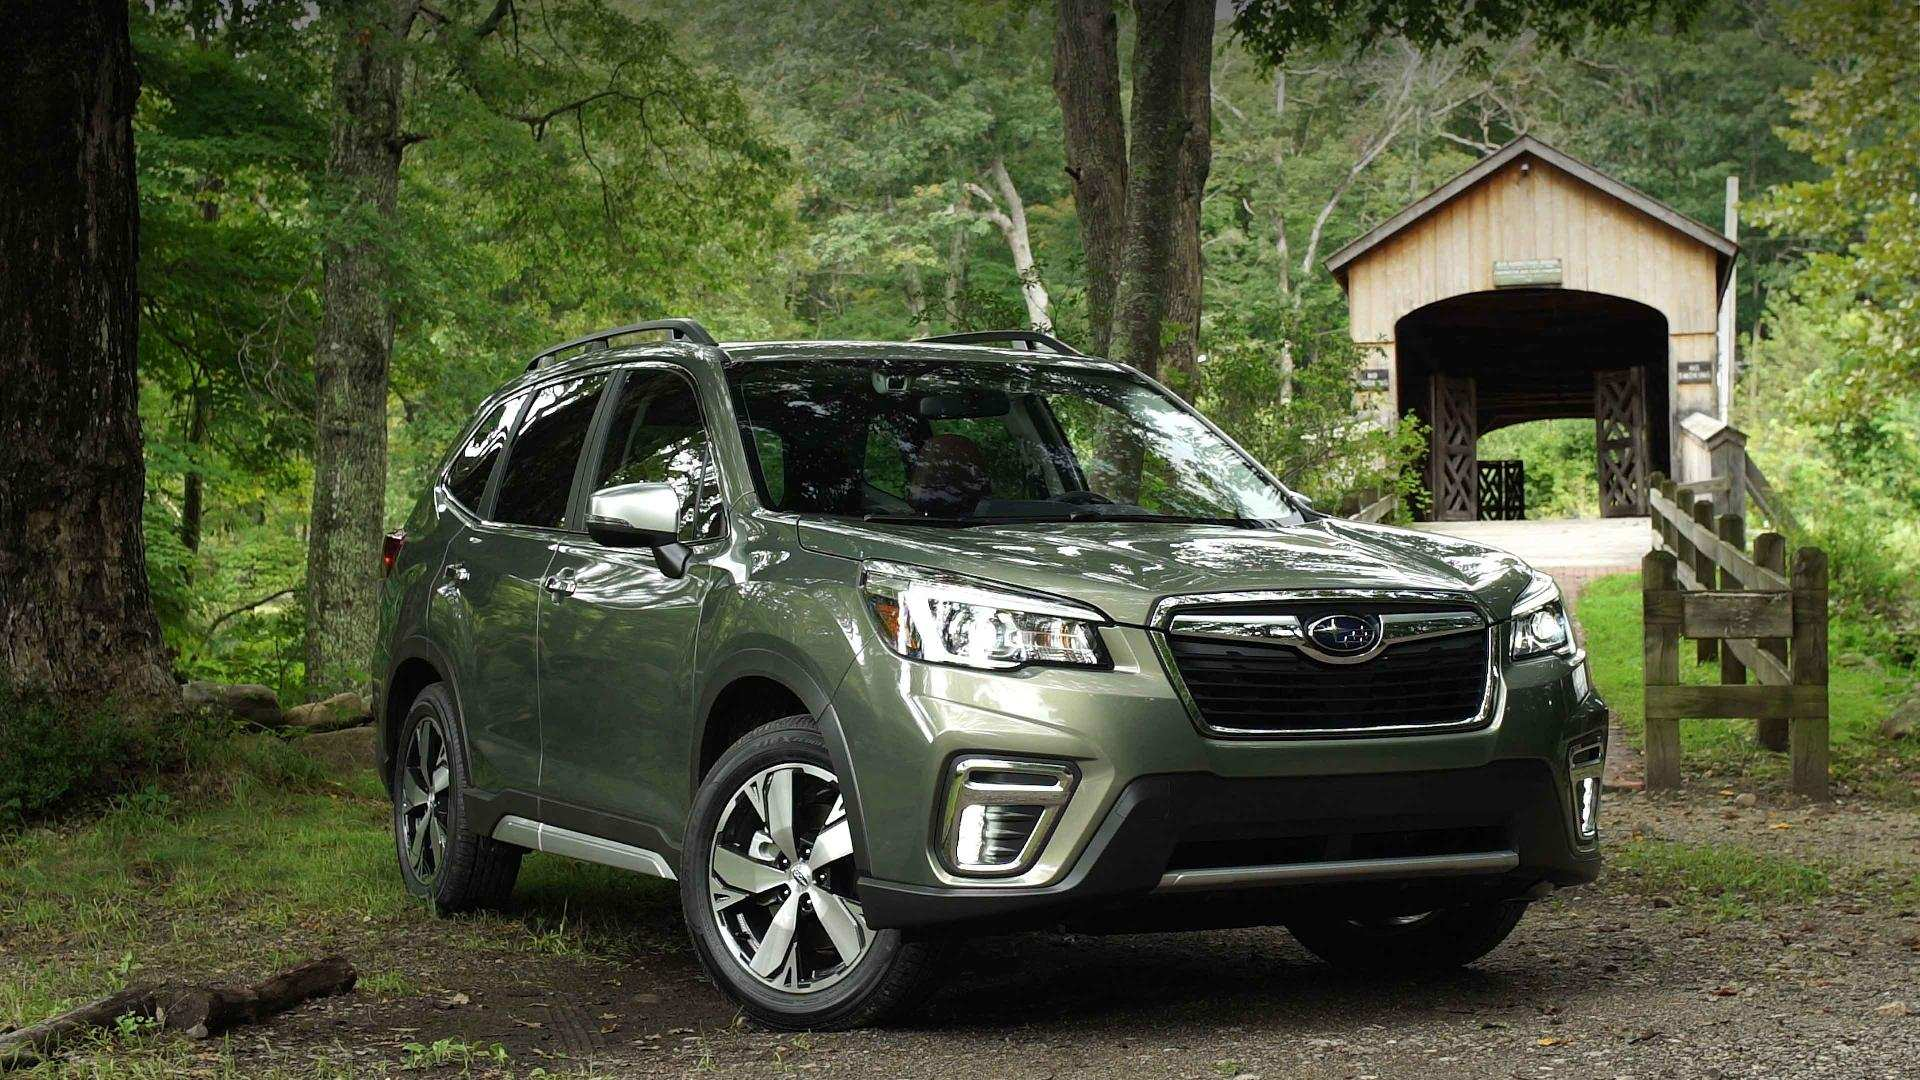 33 A Subaru Forester 2019 Gas Mileage Model